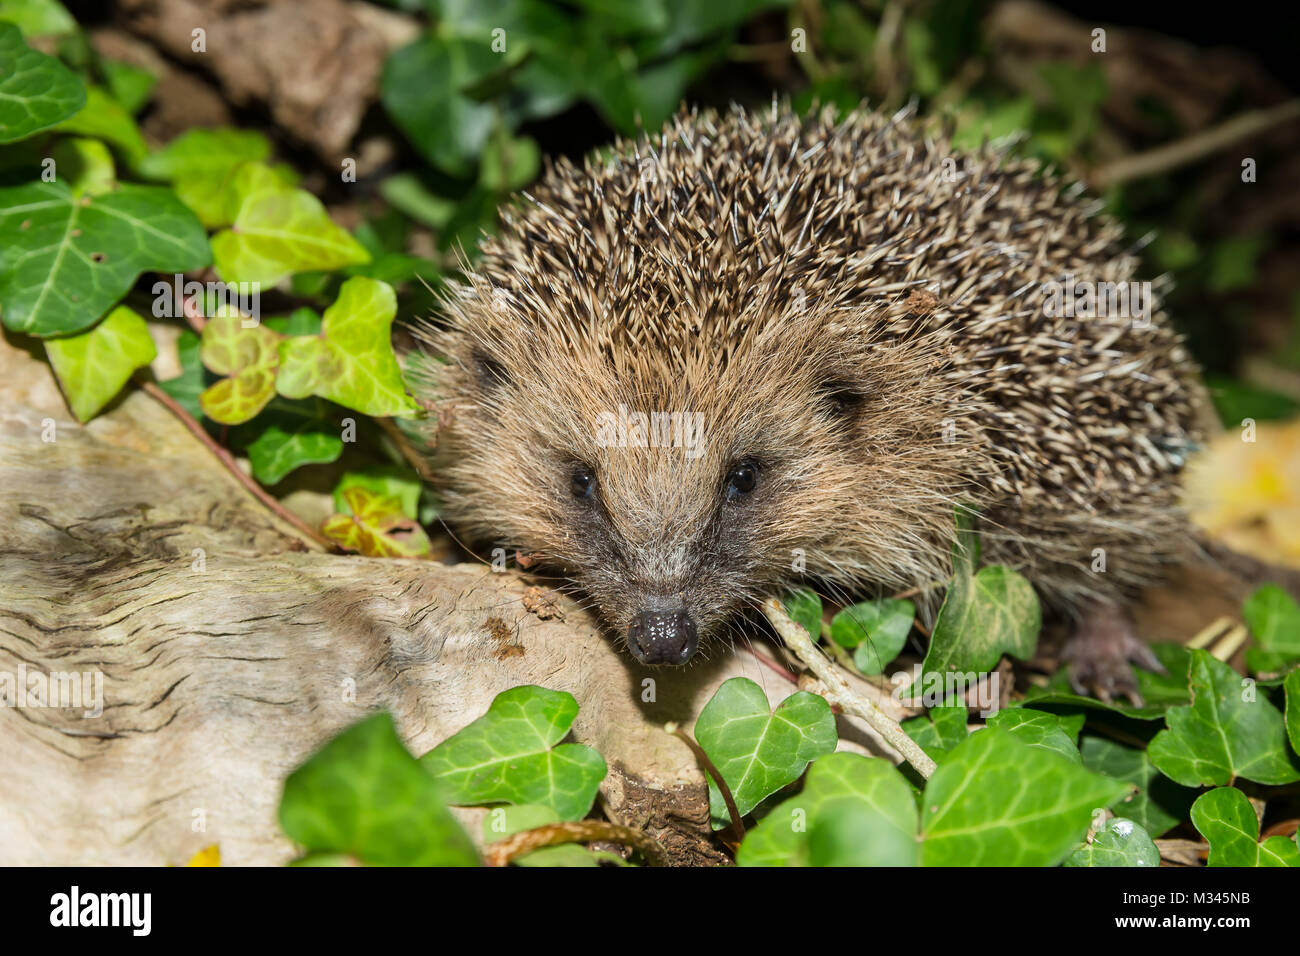 Hedgehog in Green Grass with Green Ivy and moss - Stock Image